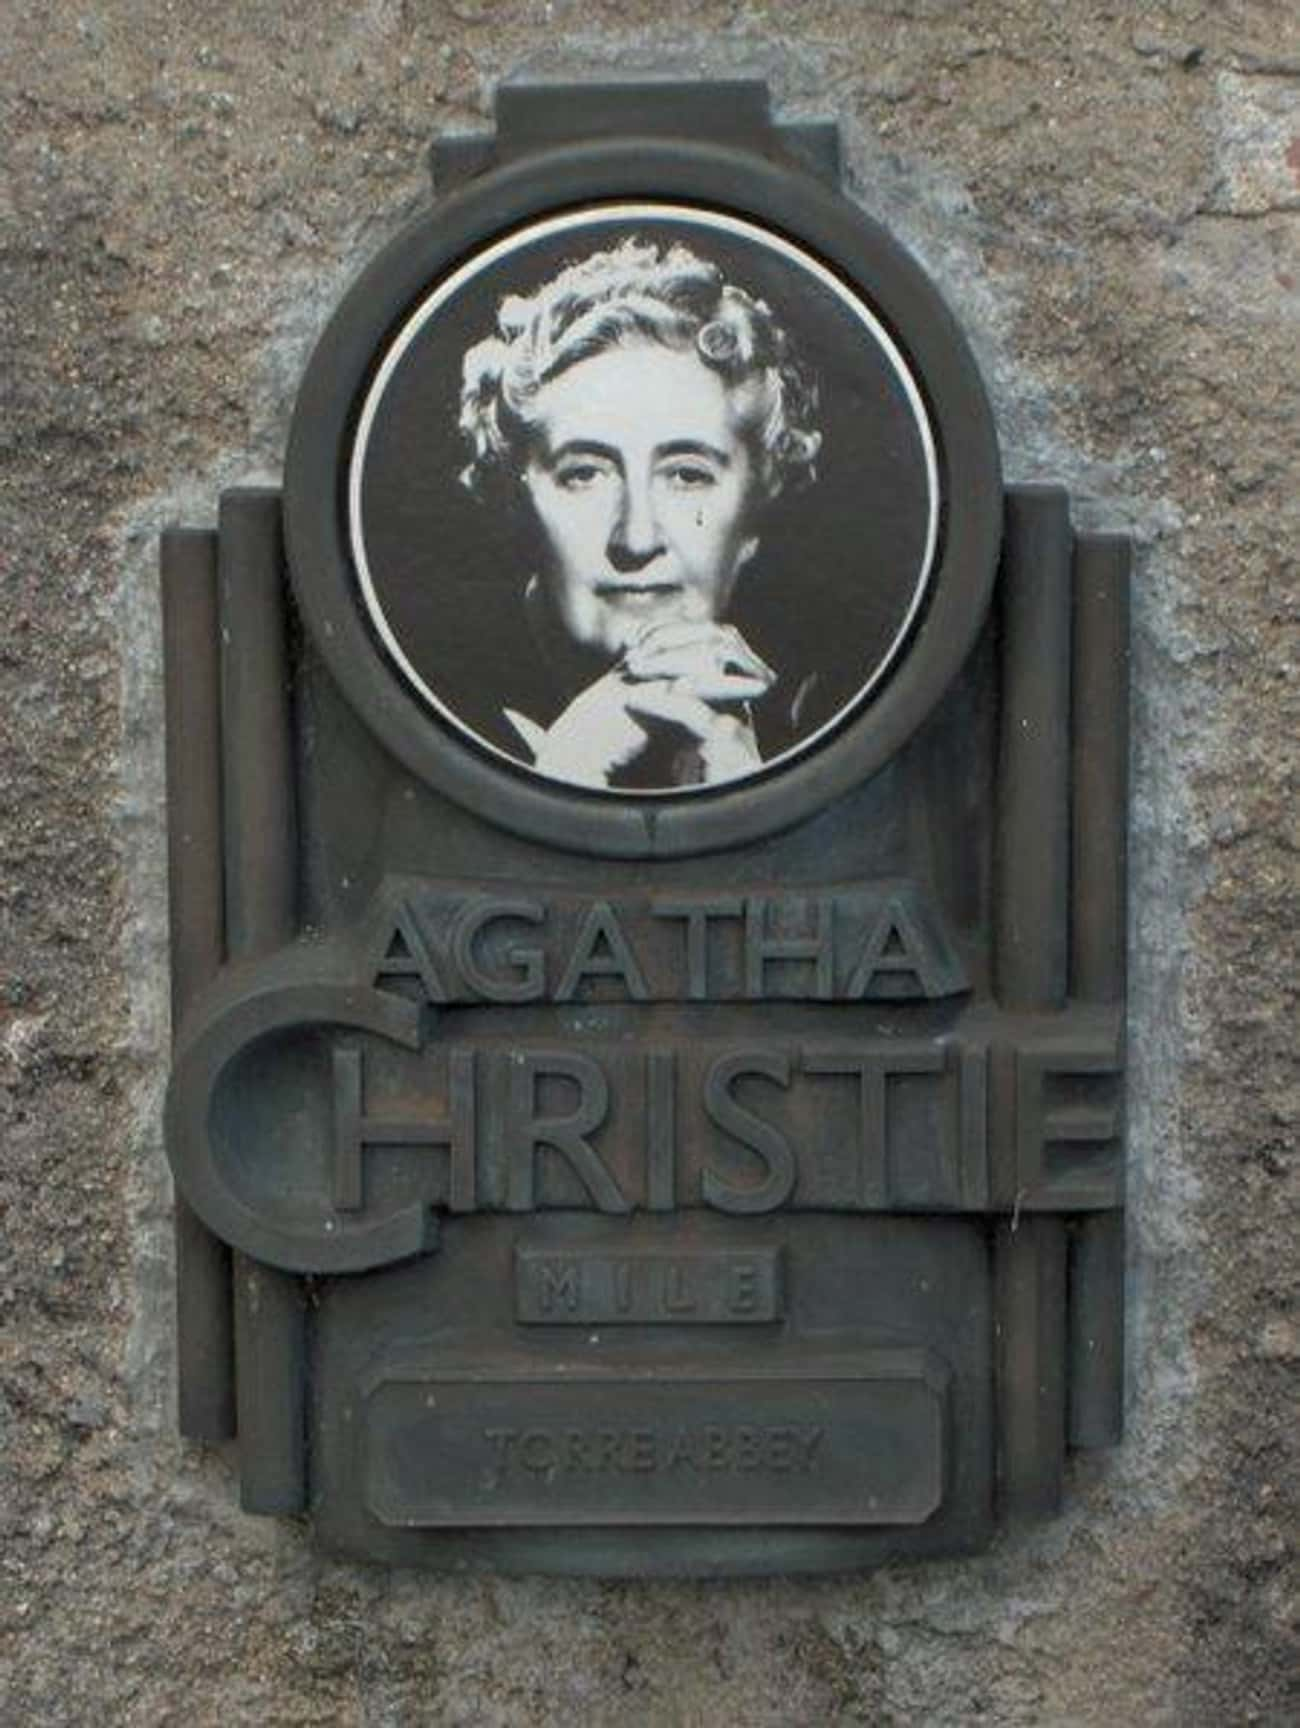 Agatha Christie is listed (or ranked) 4 on the list Famous Female Playwrights